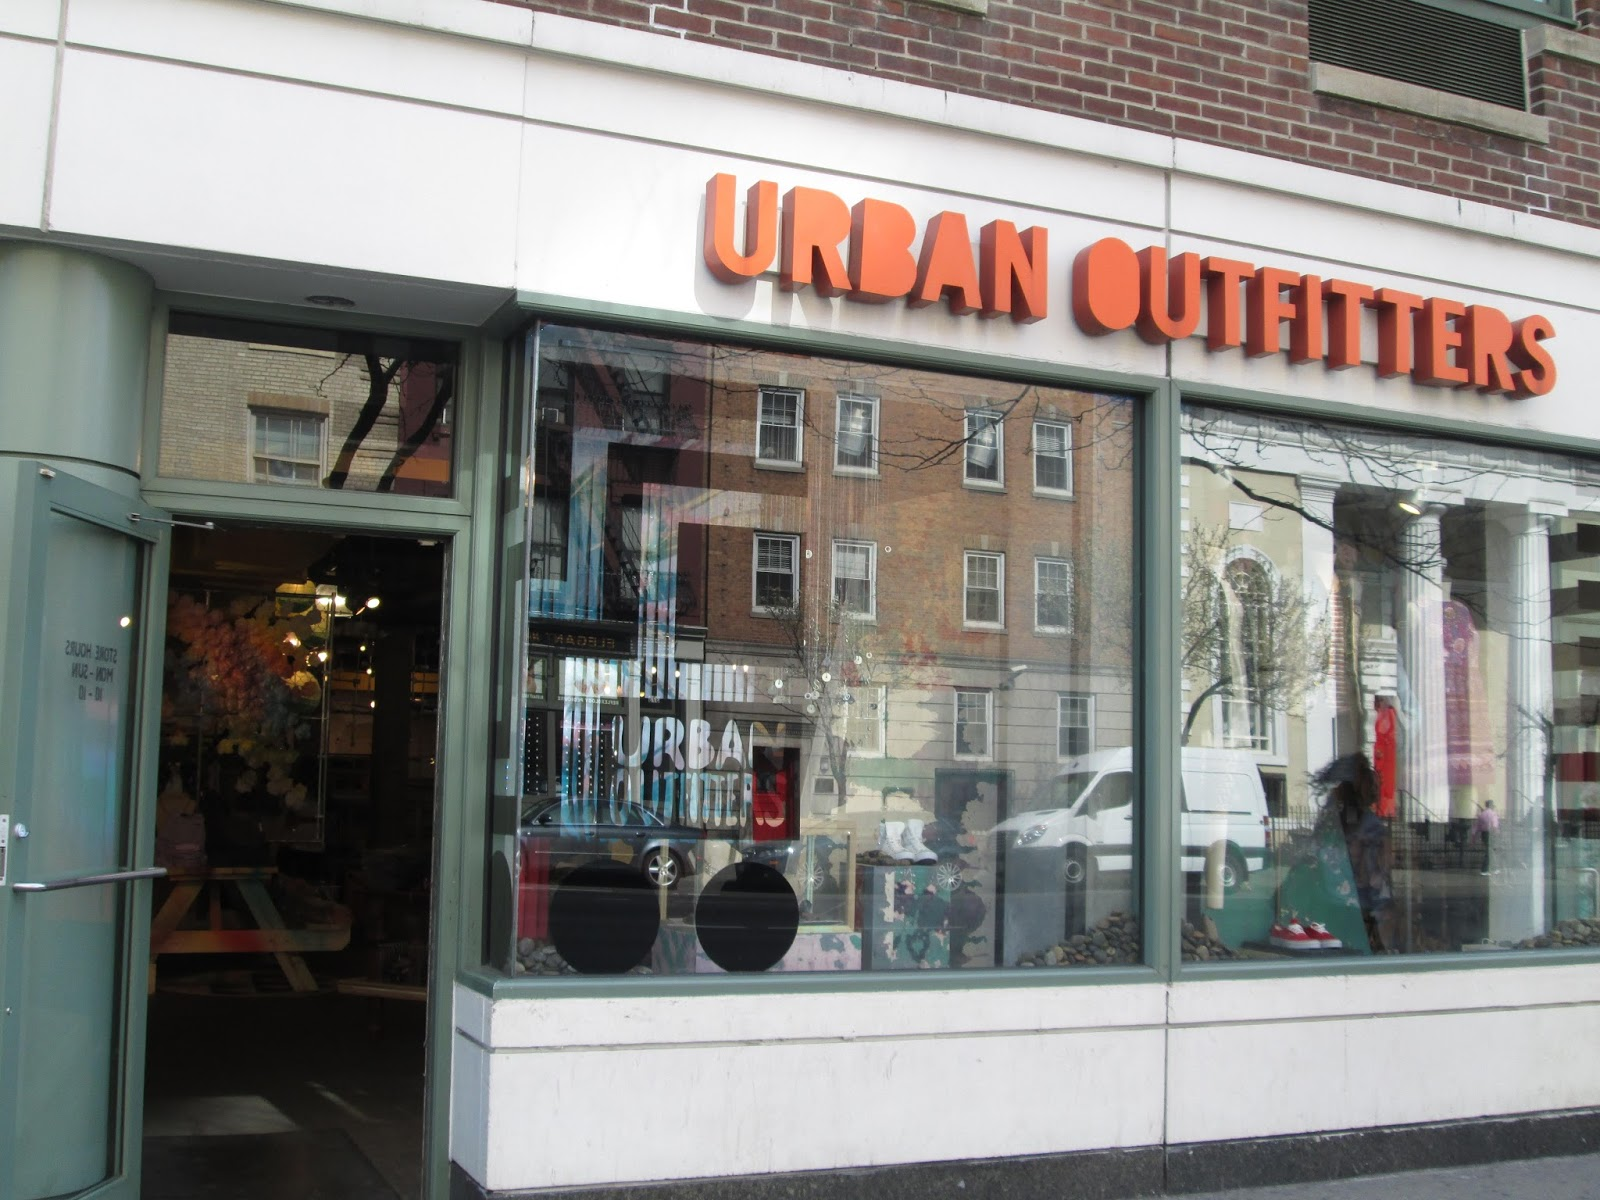 *Free shipping and returns** on orders over $ Urban Outfitters offers in-store picks ups. Order online, pick it up at your local store. Returns and exchanges will be eligible for a full refund within 30 days of shipment date.